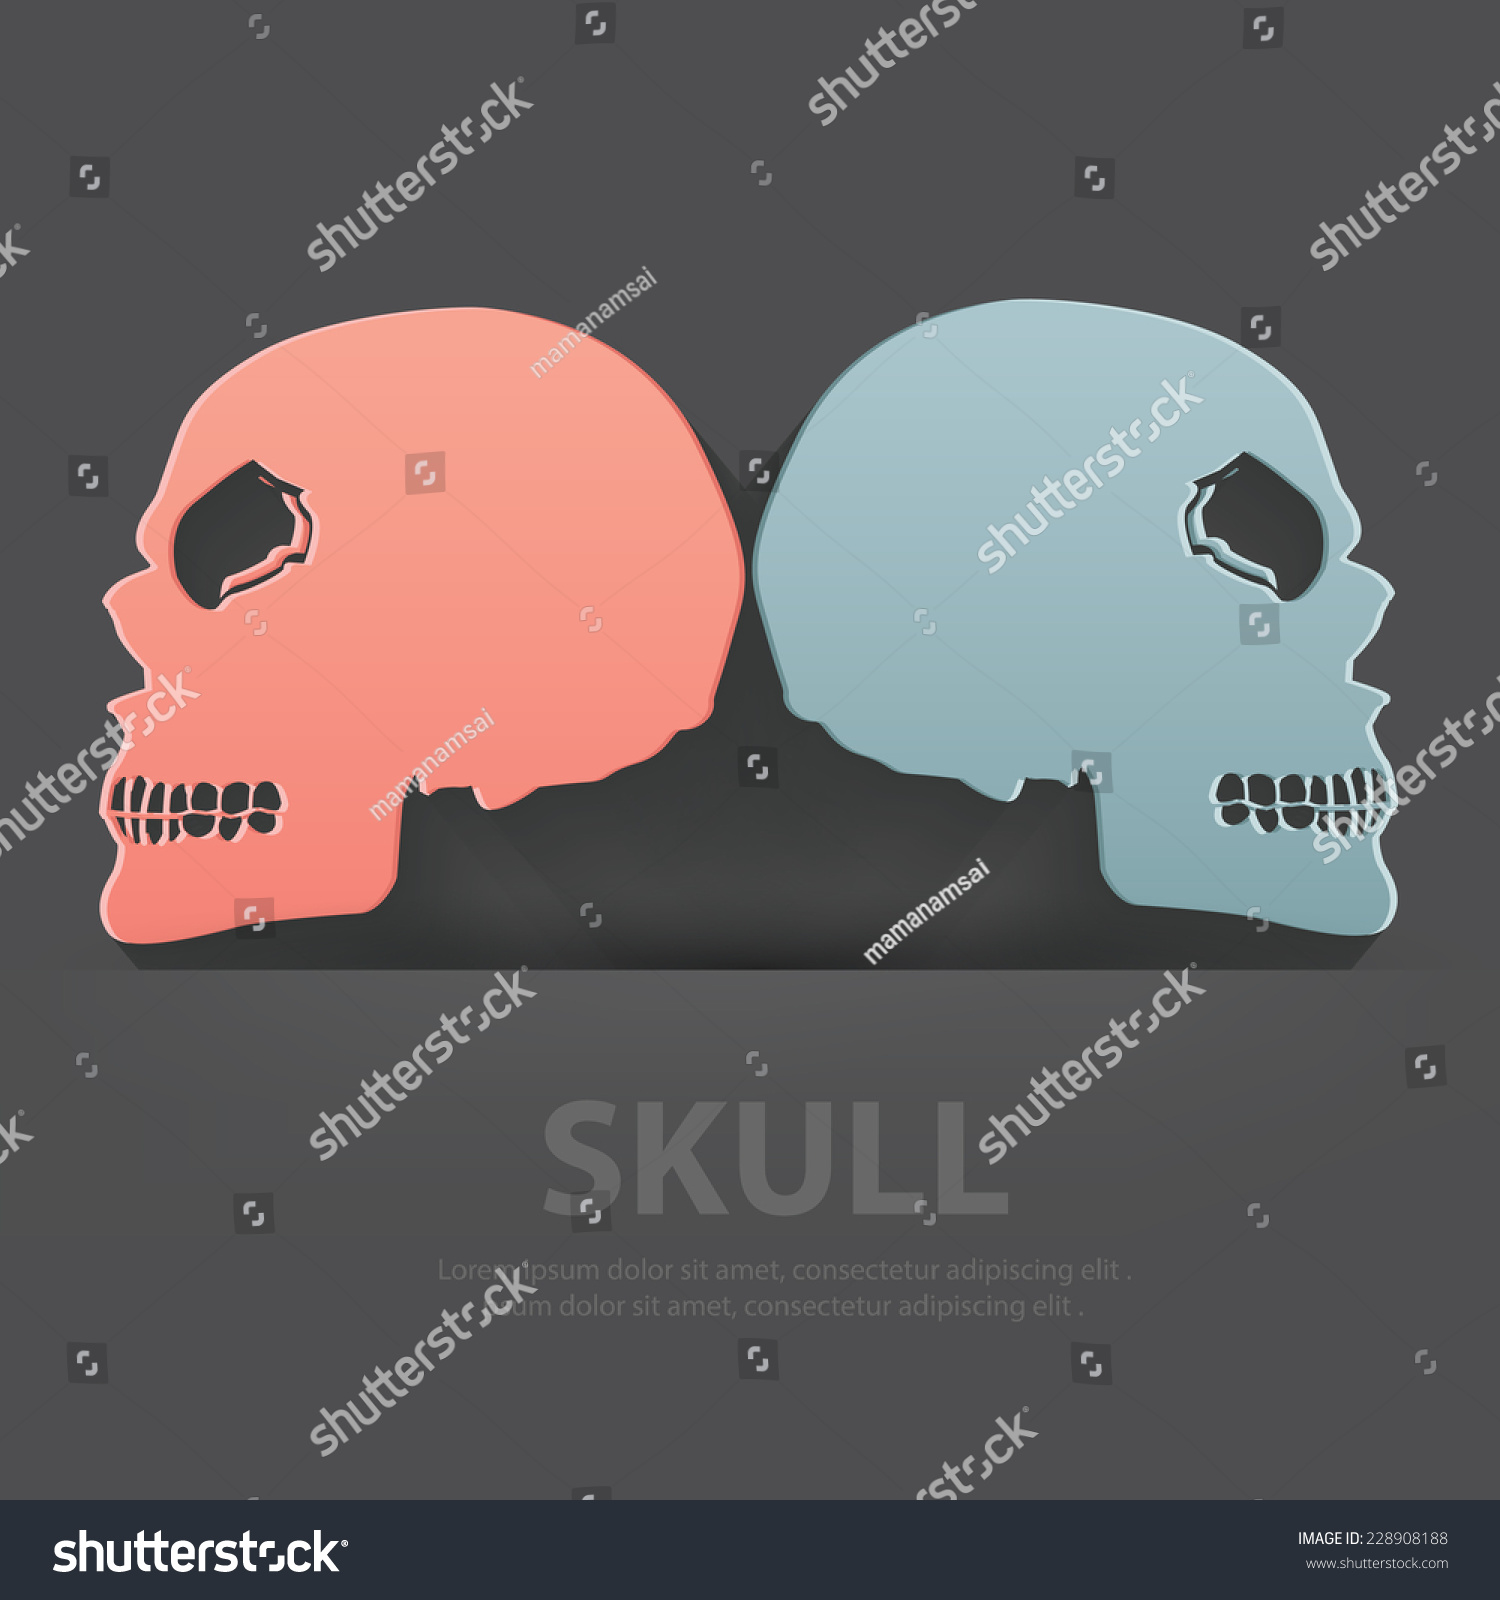 Skull symbolblank your textclean vector stock vector 228908188 skull symbolblank for your textclean vector buycottarizona Images